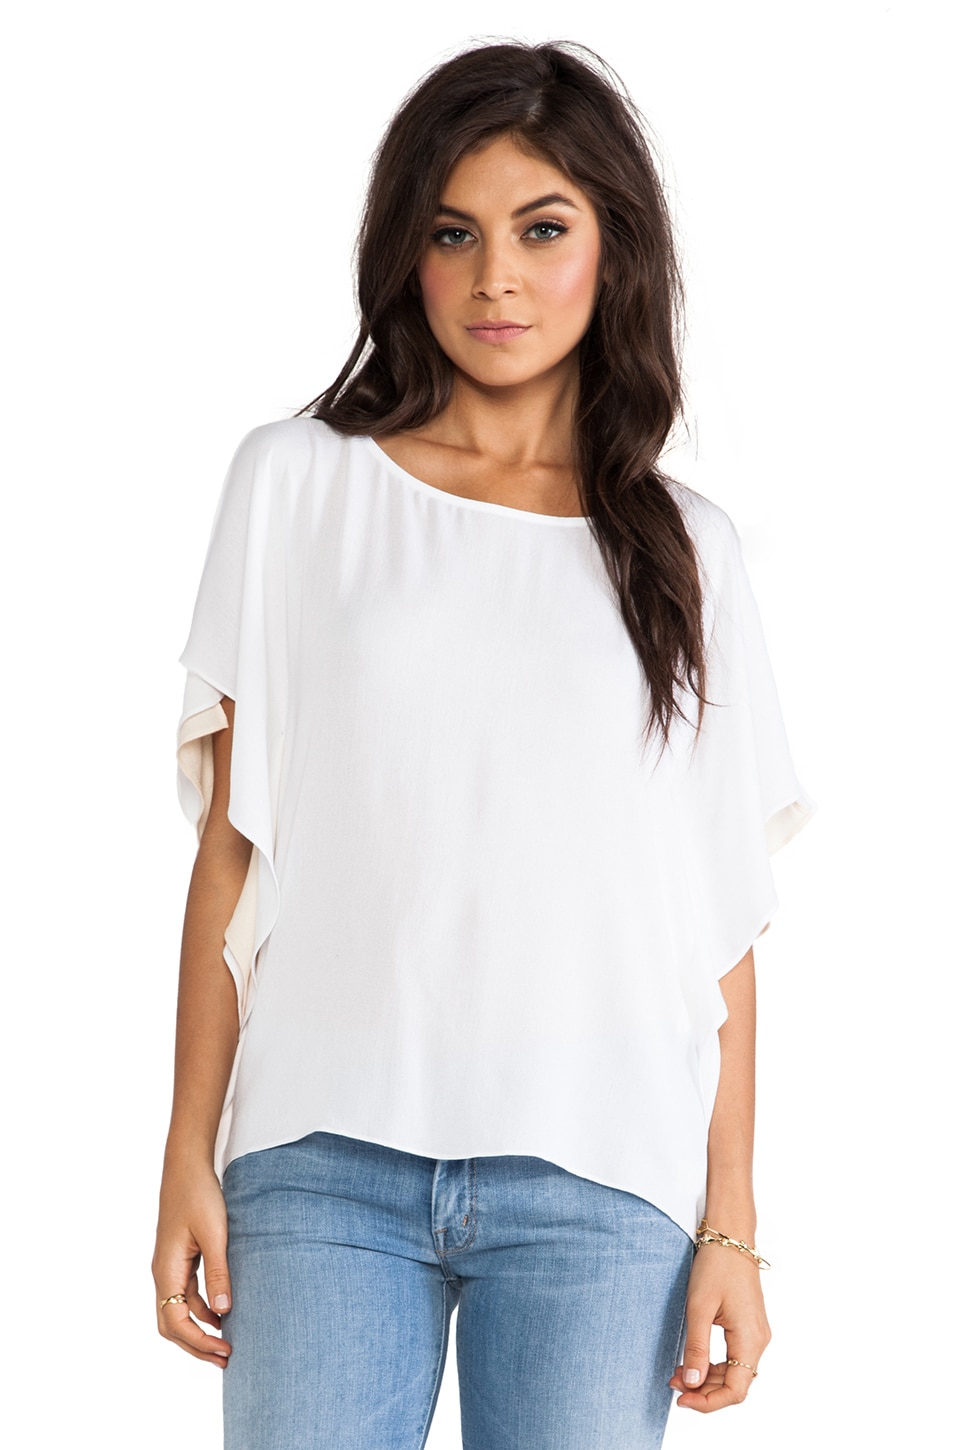 Ella Moss Stella Top in White & Nude